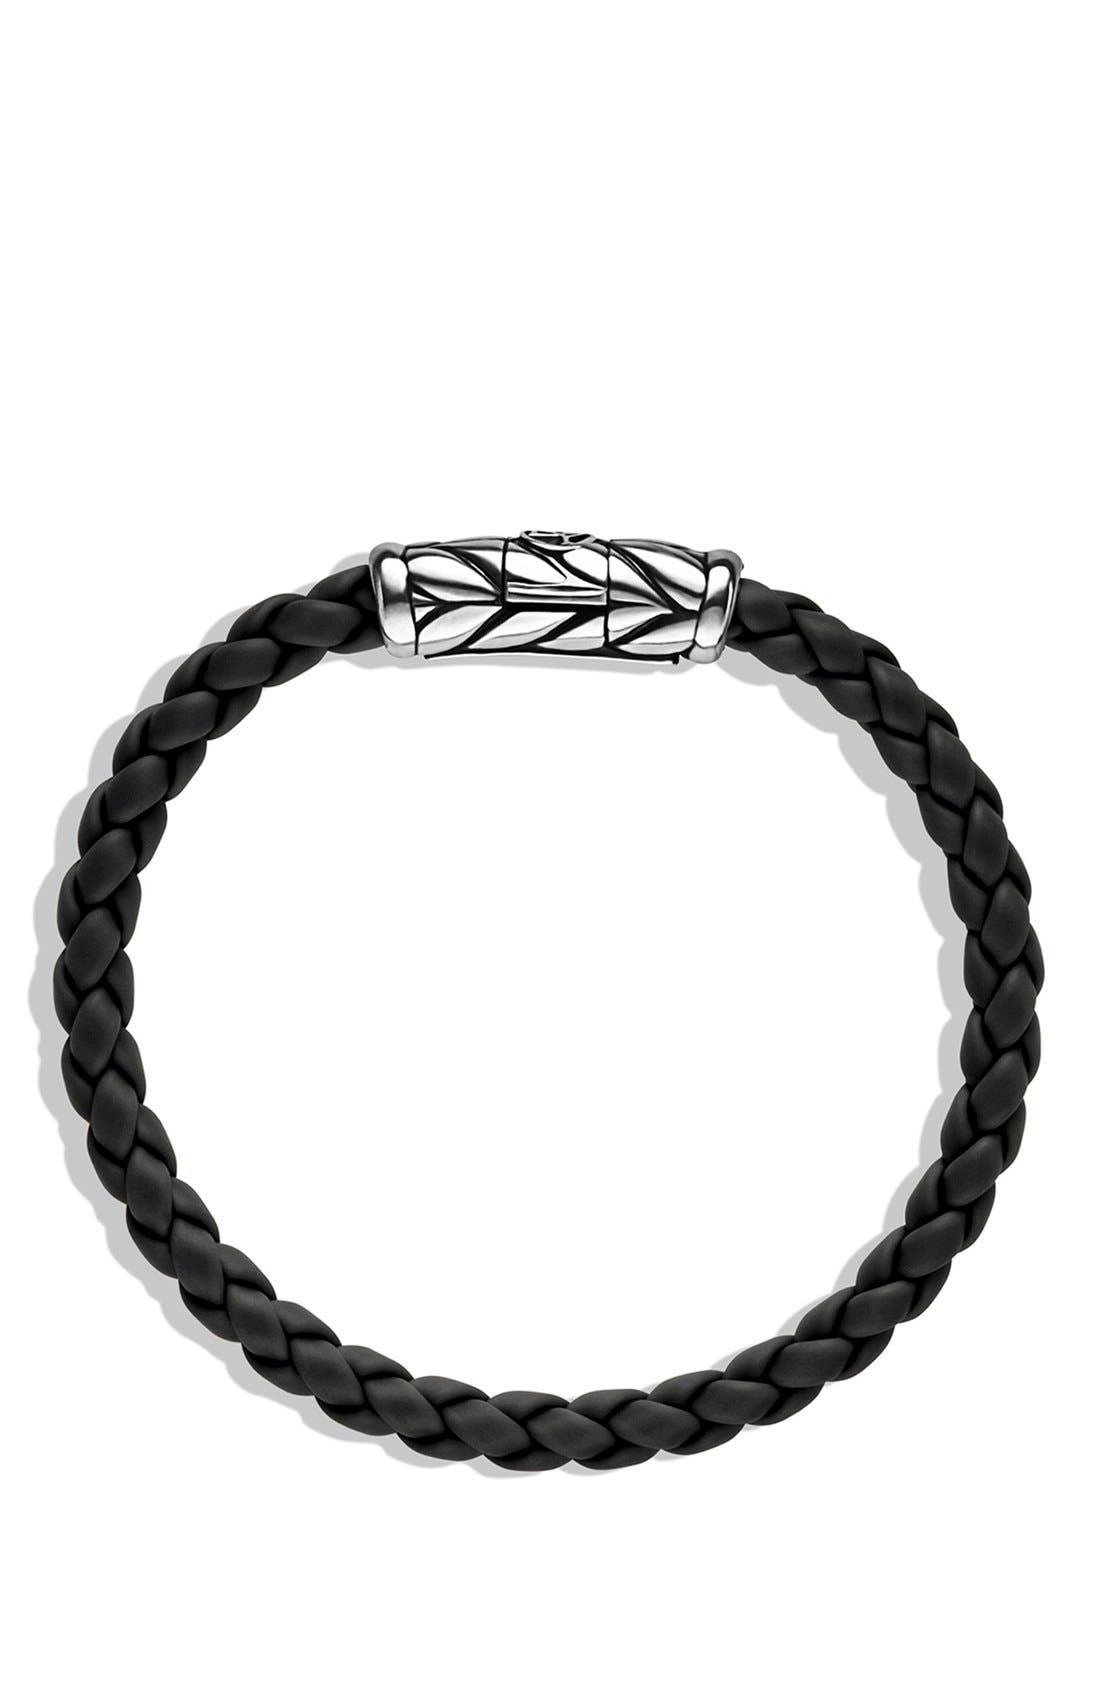 Alternate Image 2  - David Yurman 'Chevron' Woven Rubber Bracelet